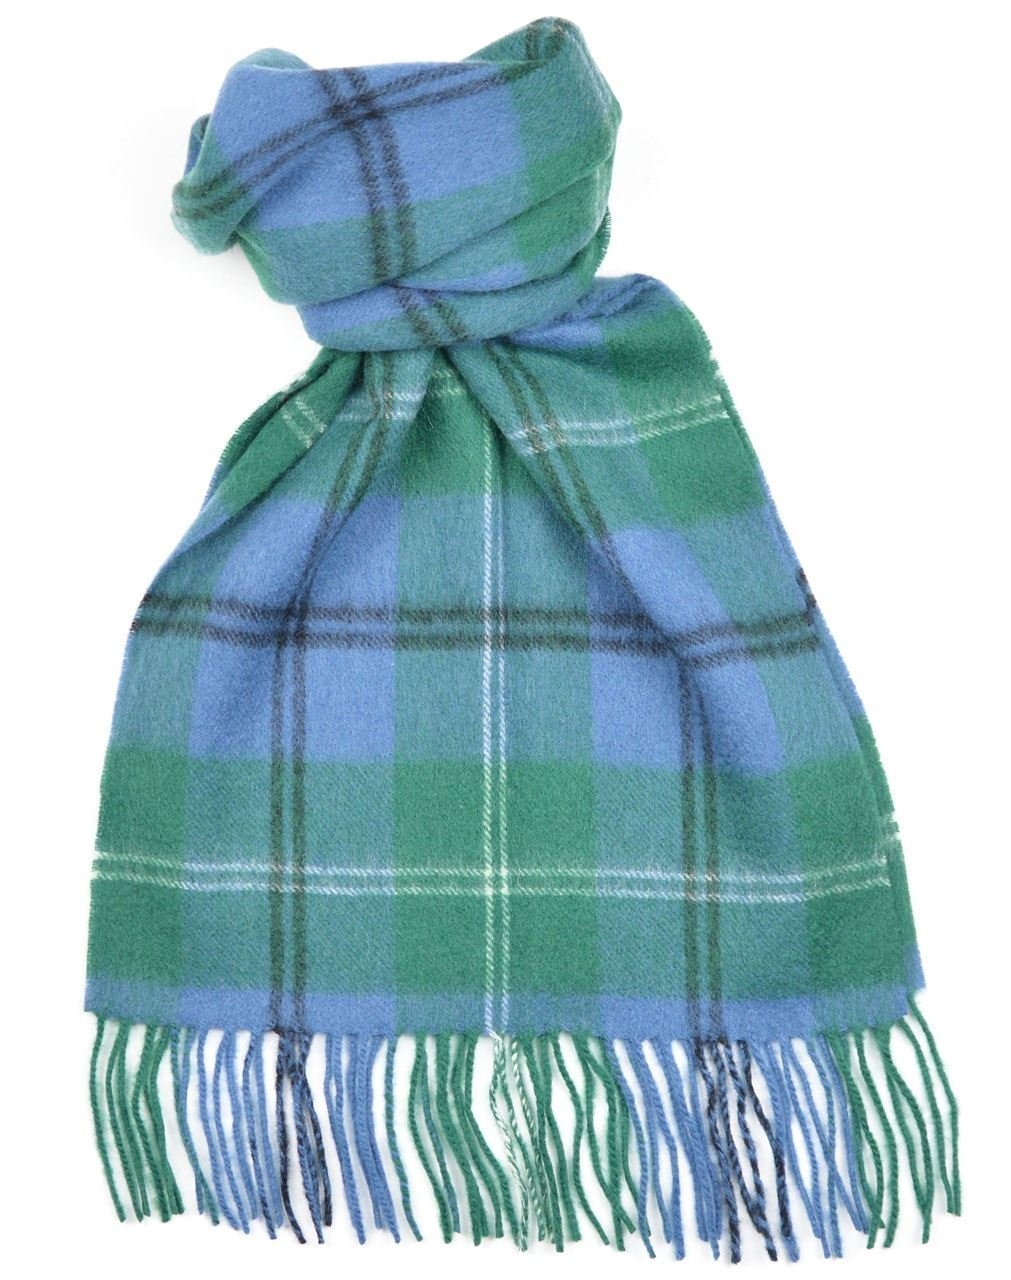 Lambswool Scottish Clan Scarf Melville Ancient Tartan by Macdonald Sporrans (Image #1)